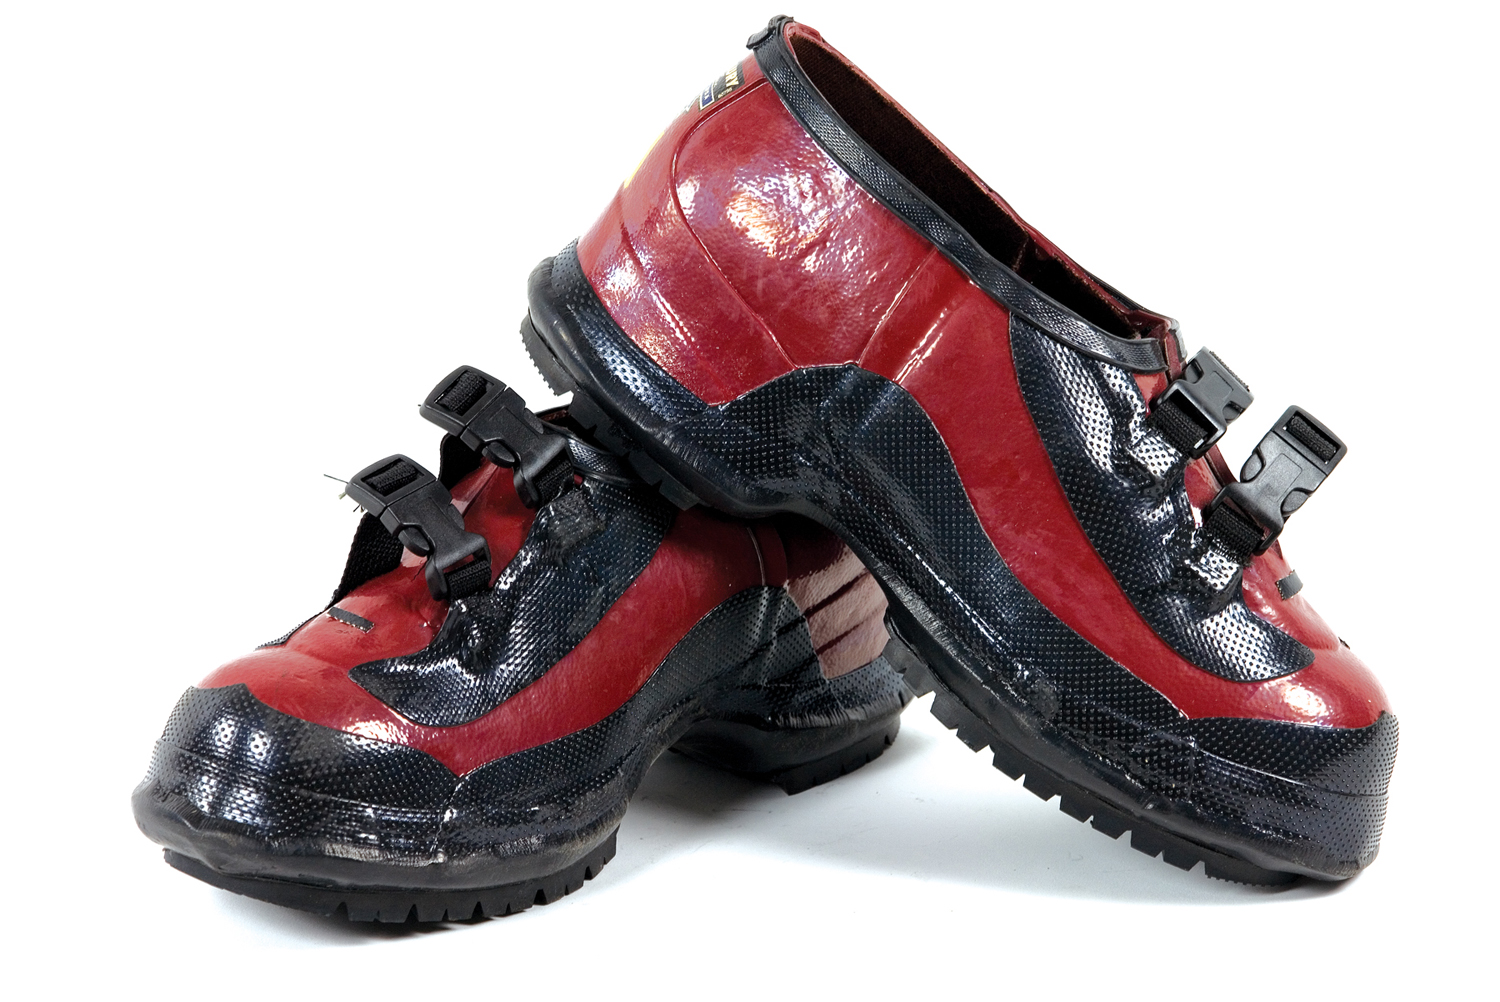 Salisbury ASTM Dielectric Improved Overshoes 2 Buckle, 7 (0500052986)